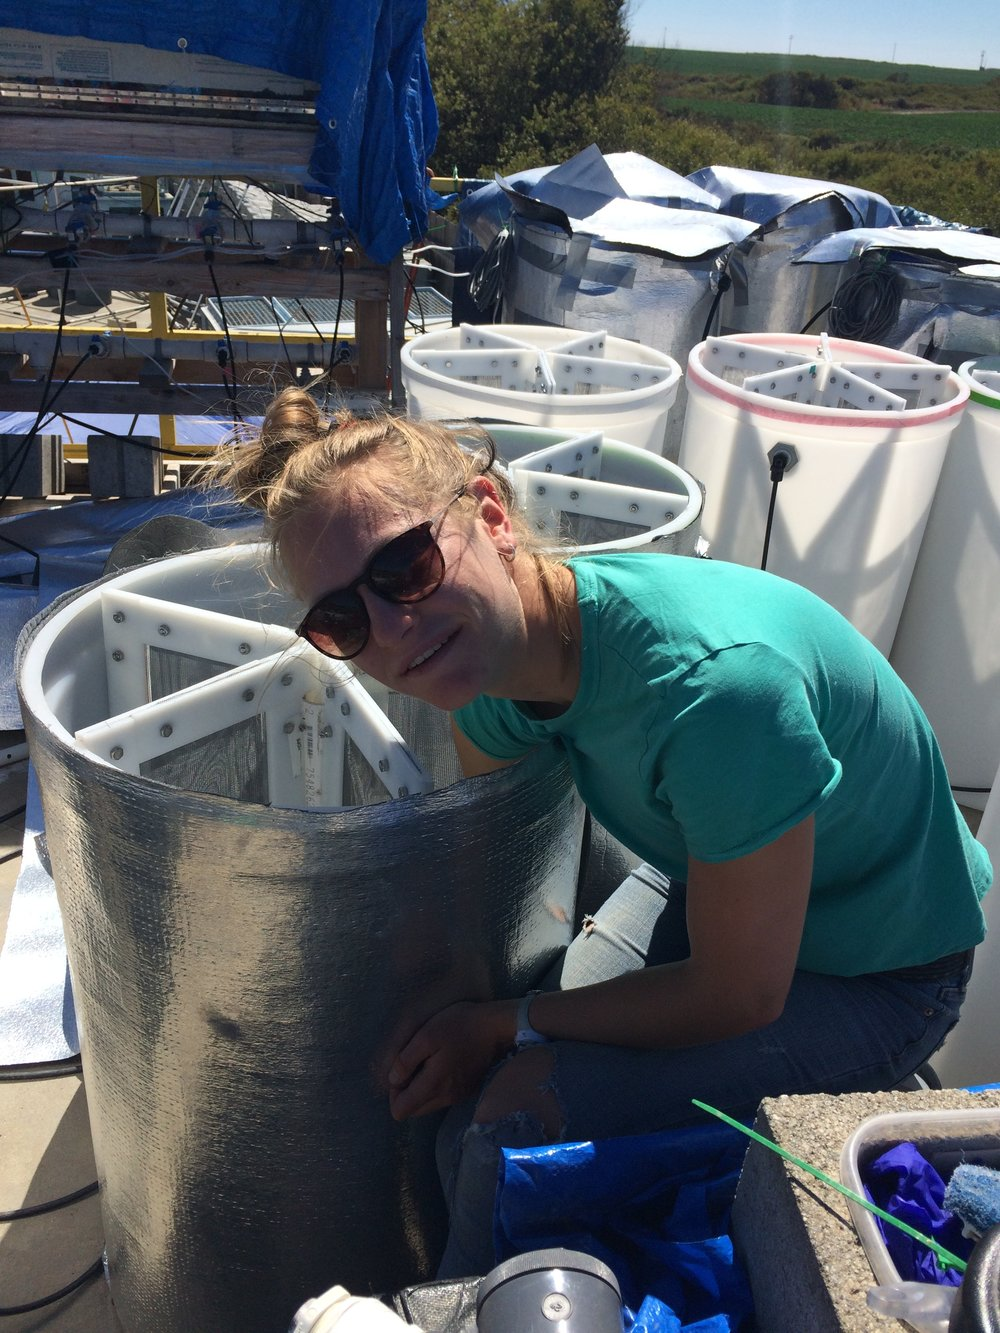 Undergraduate researcher Clare Peabody (Brown University) setting up large experimental tank. Photo credit: E Donham